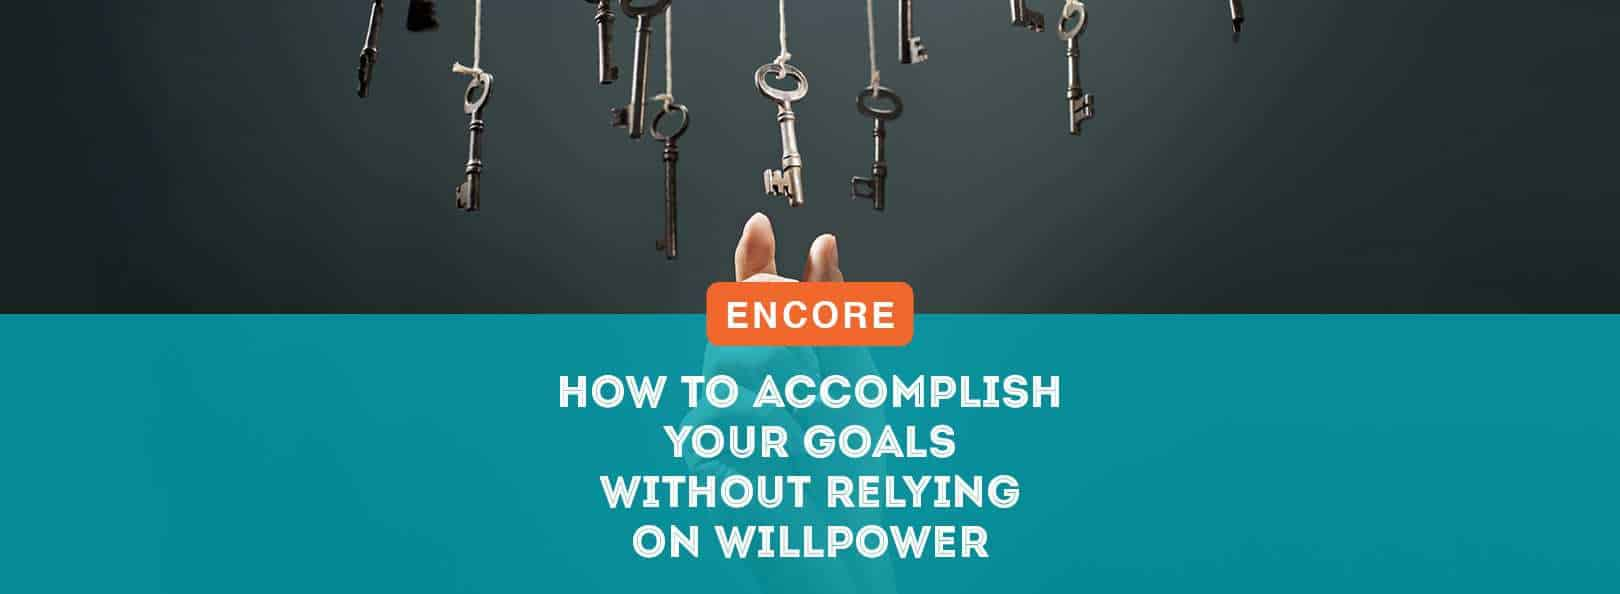 ENCORE: How to Accomplish Your Goals Without Relying on Willpower